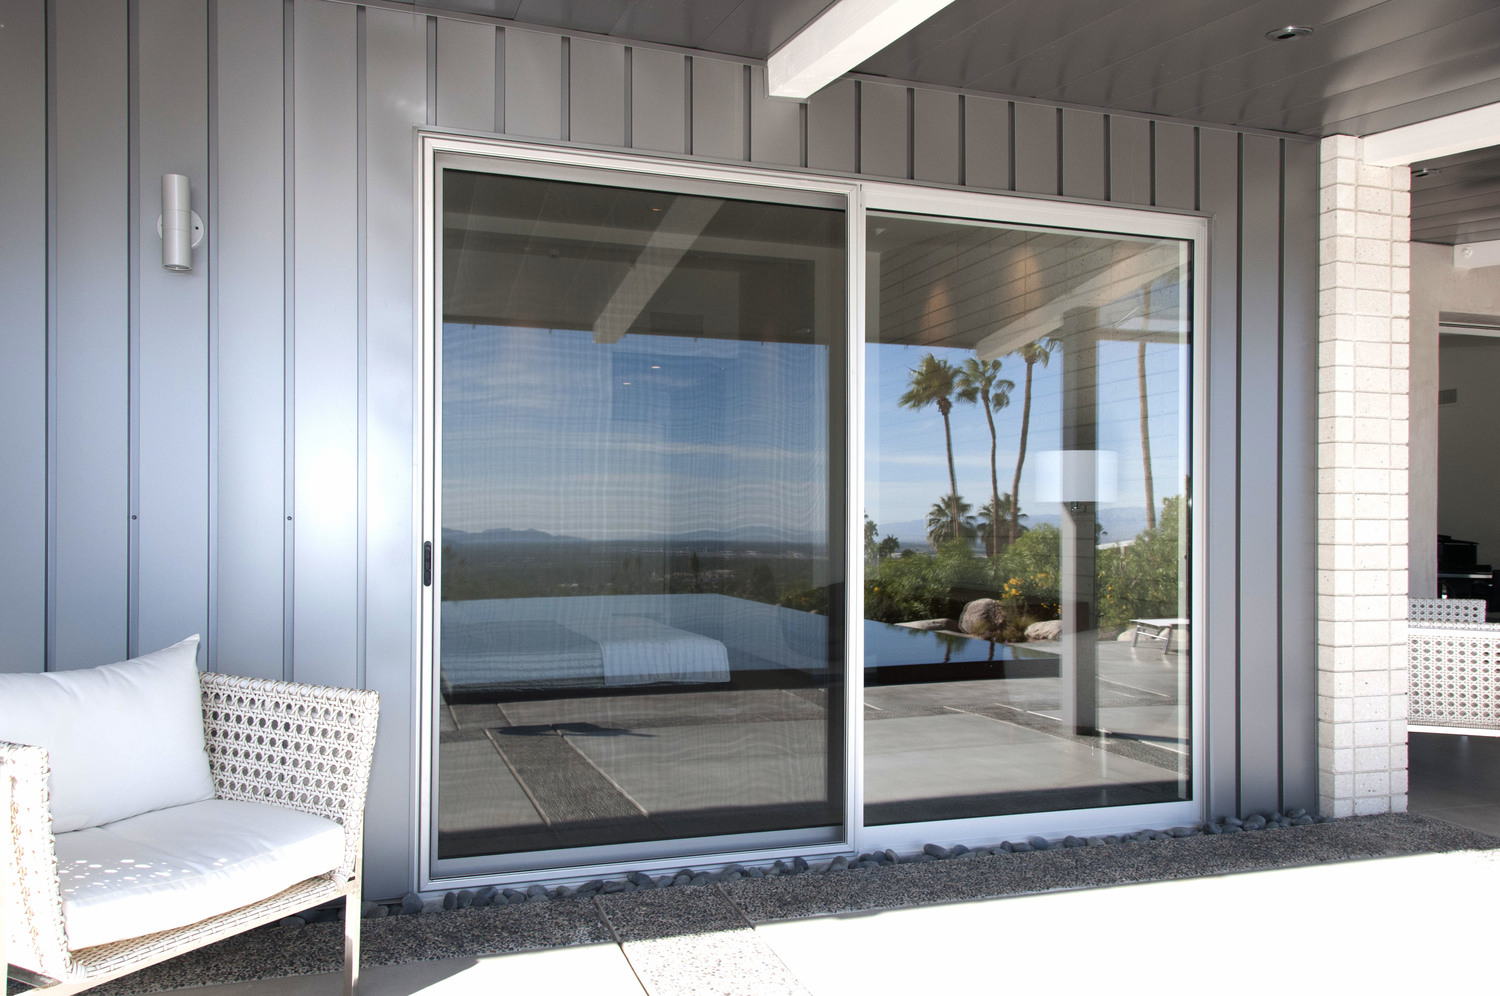 Sliding Glass Door Replacement101 Jpg